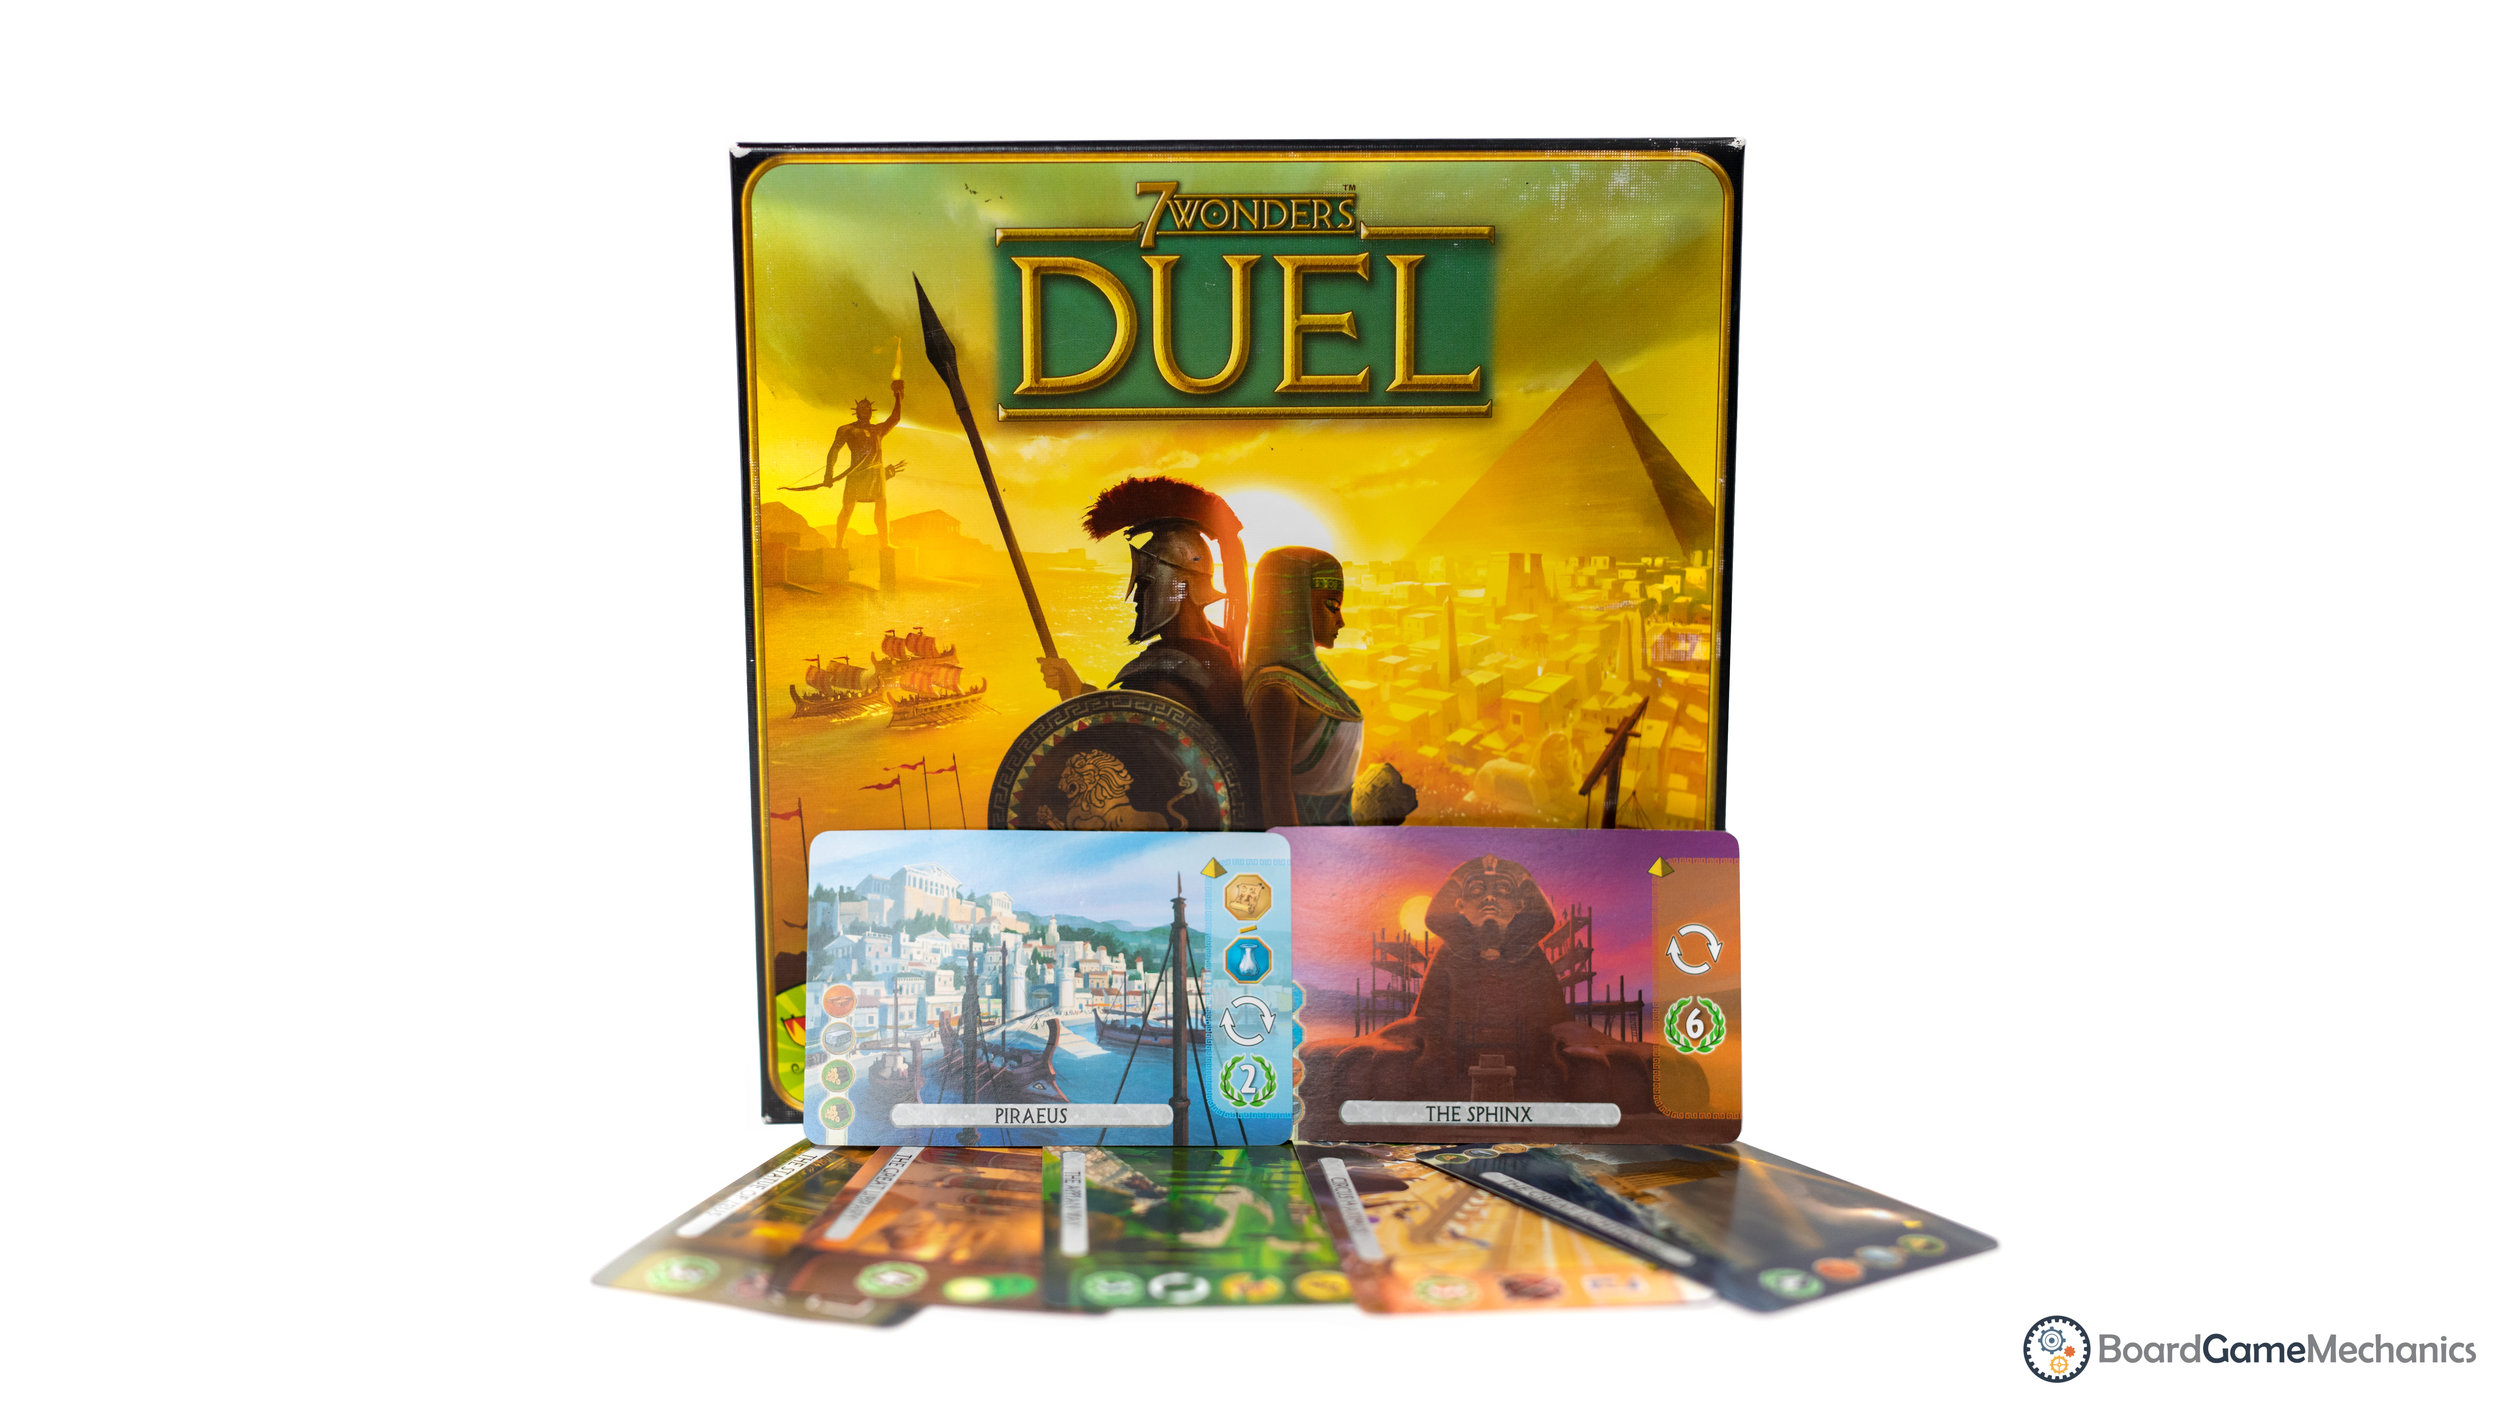 7 Wonders Duel Board Game Review